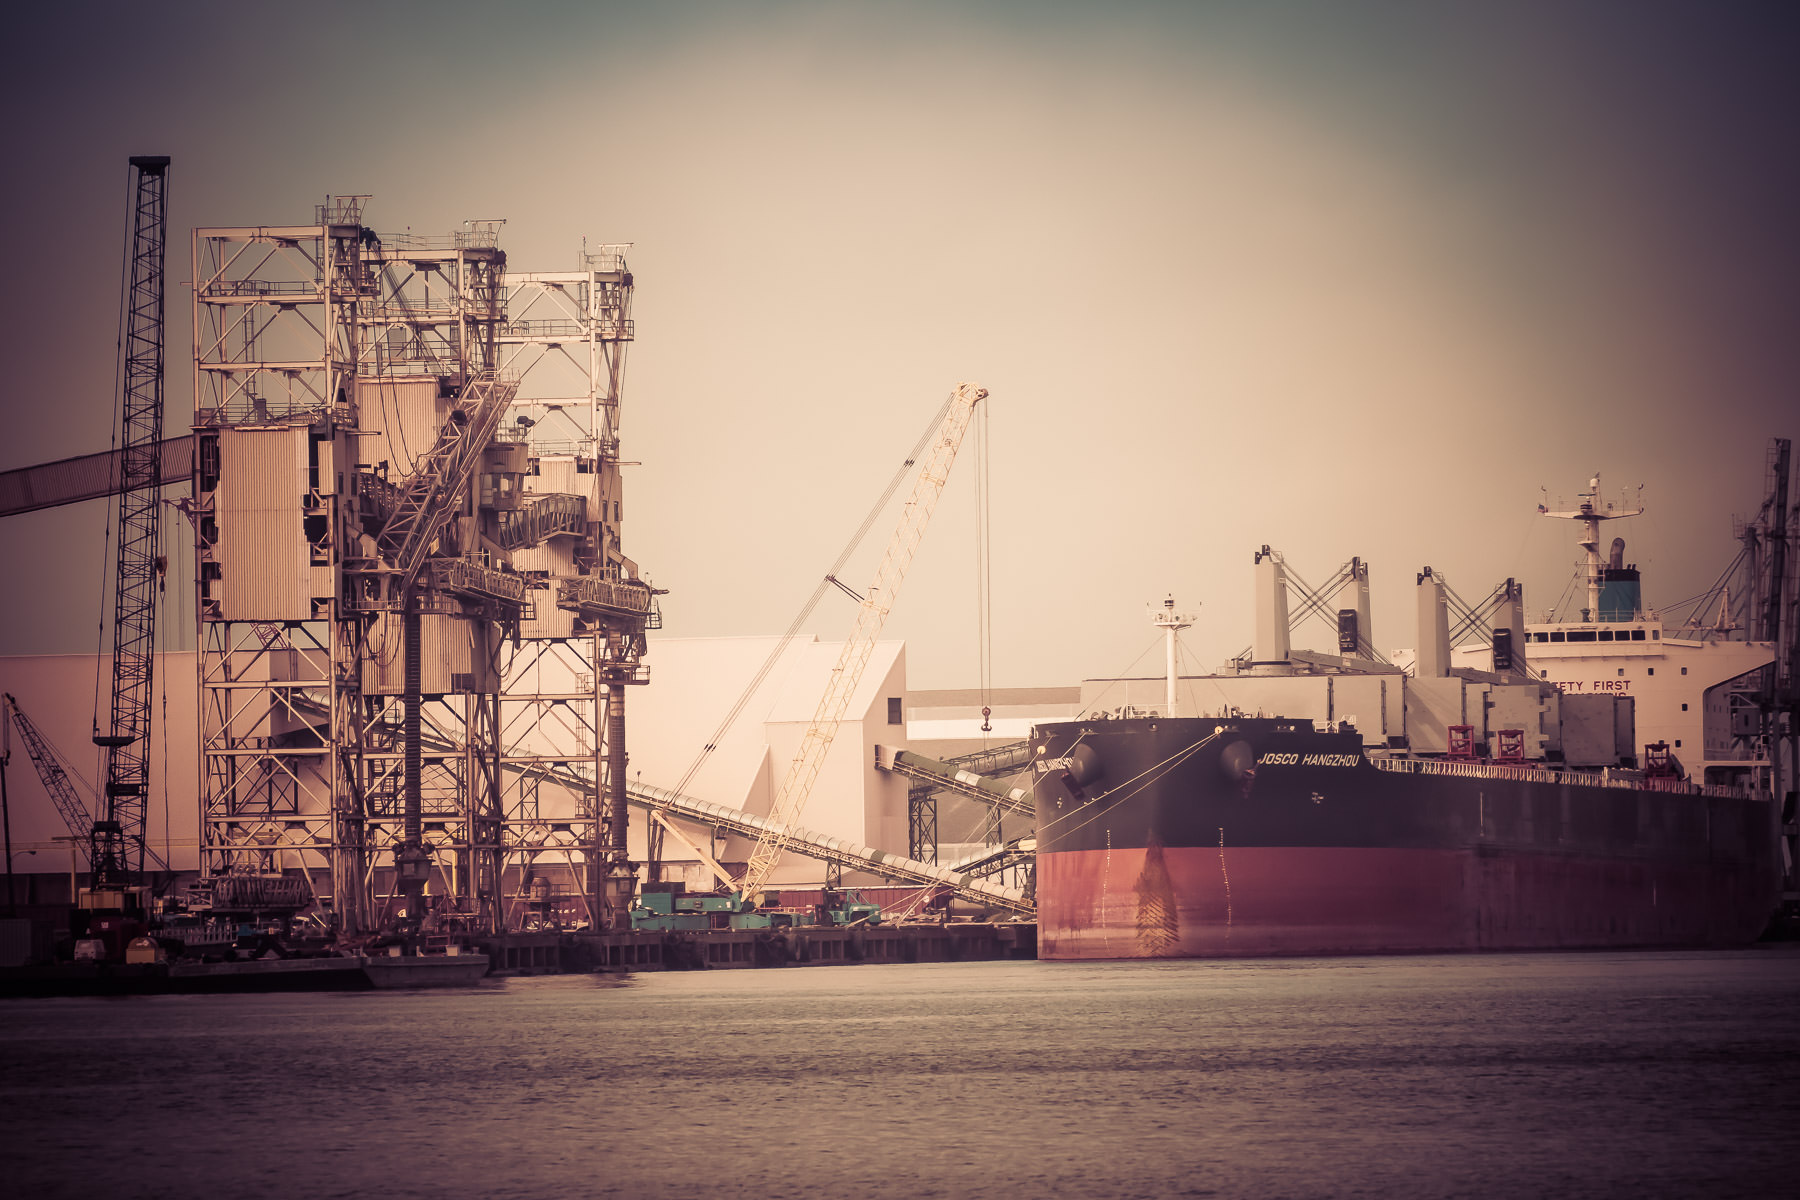 The bulk carrier Josco Hangzhou, docked in Galveston, Texas.